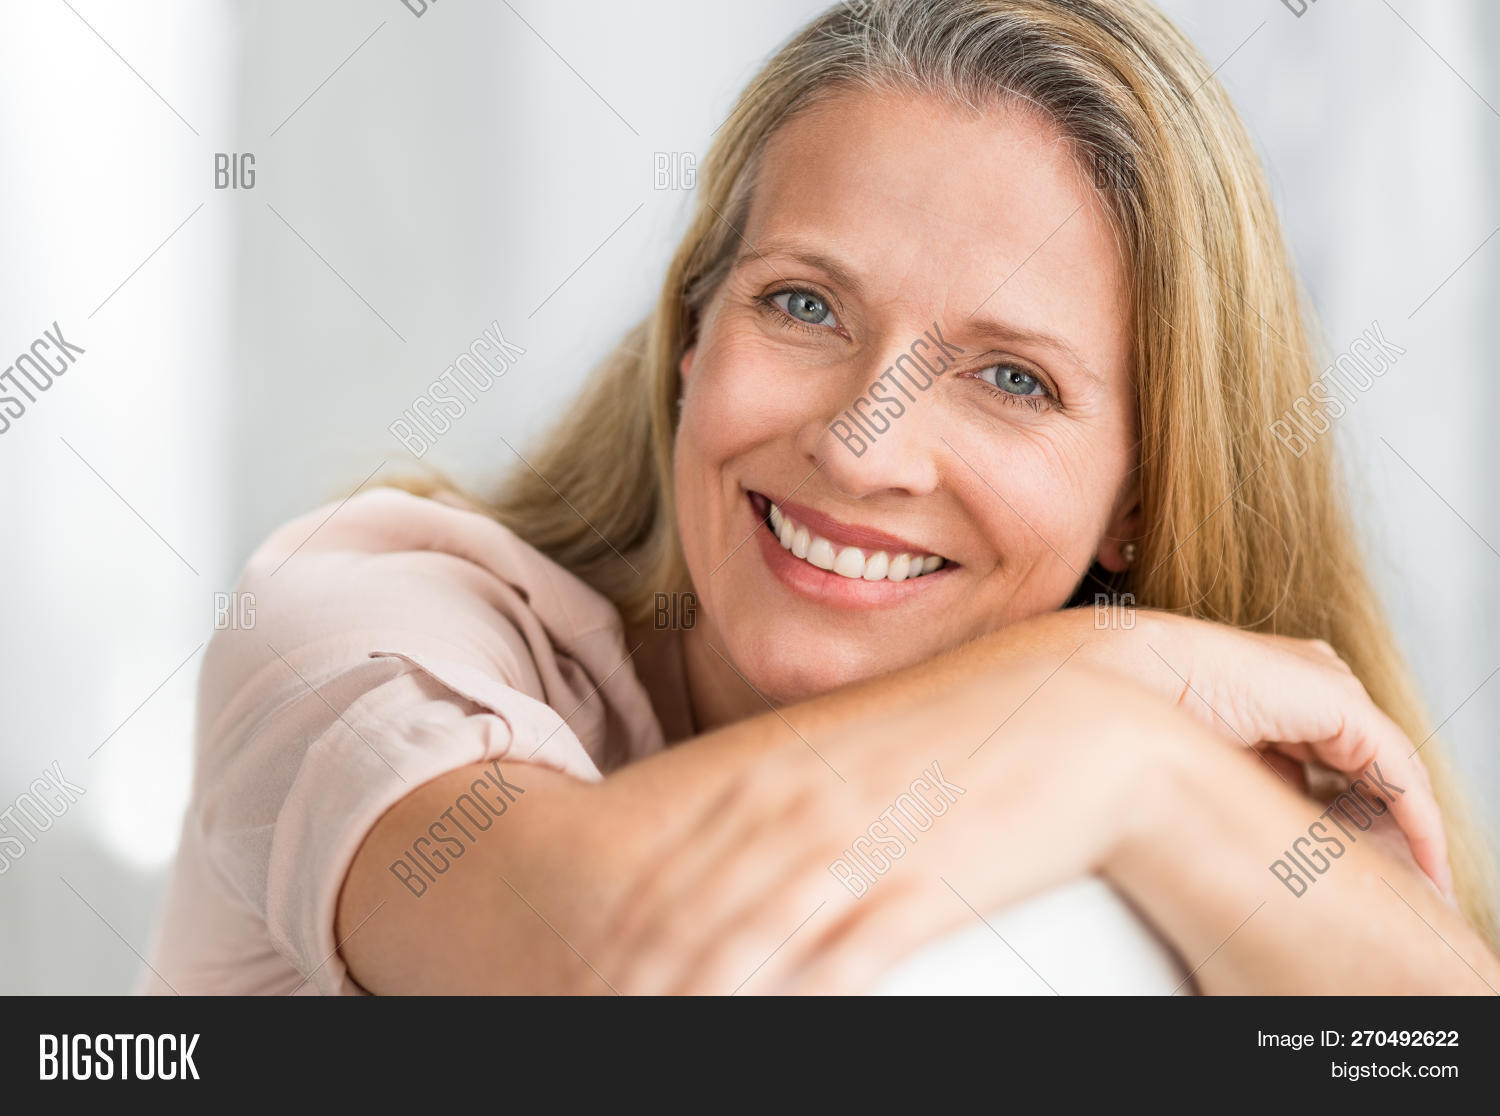 age,aged,aged care,aging process,attractive,beautiful,blonde,blonde hair,carefree,caucasian,cheerful,contemplation,couch,dental,elderly,face,happy,imagination,indoor,lady,leisure,looking,looking at camera,mature,mid adult woman,middle,middle aged woman,portrait,positive,positive attitude,proud,relax,relaxed woman,retired,retirement,satisfaction,satisfied,senior,serene,sitting,smile,sofa,teeth,thinking,toothy,toothy smile,whiten,whitening,woman,wrinkle